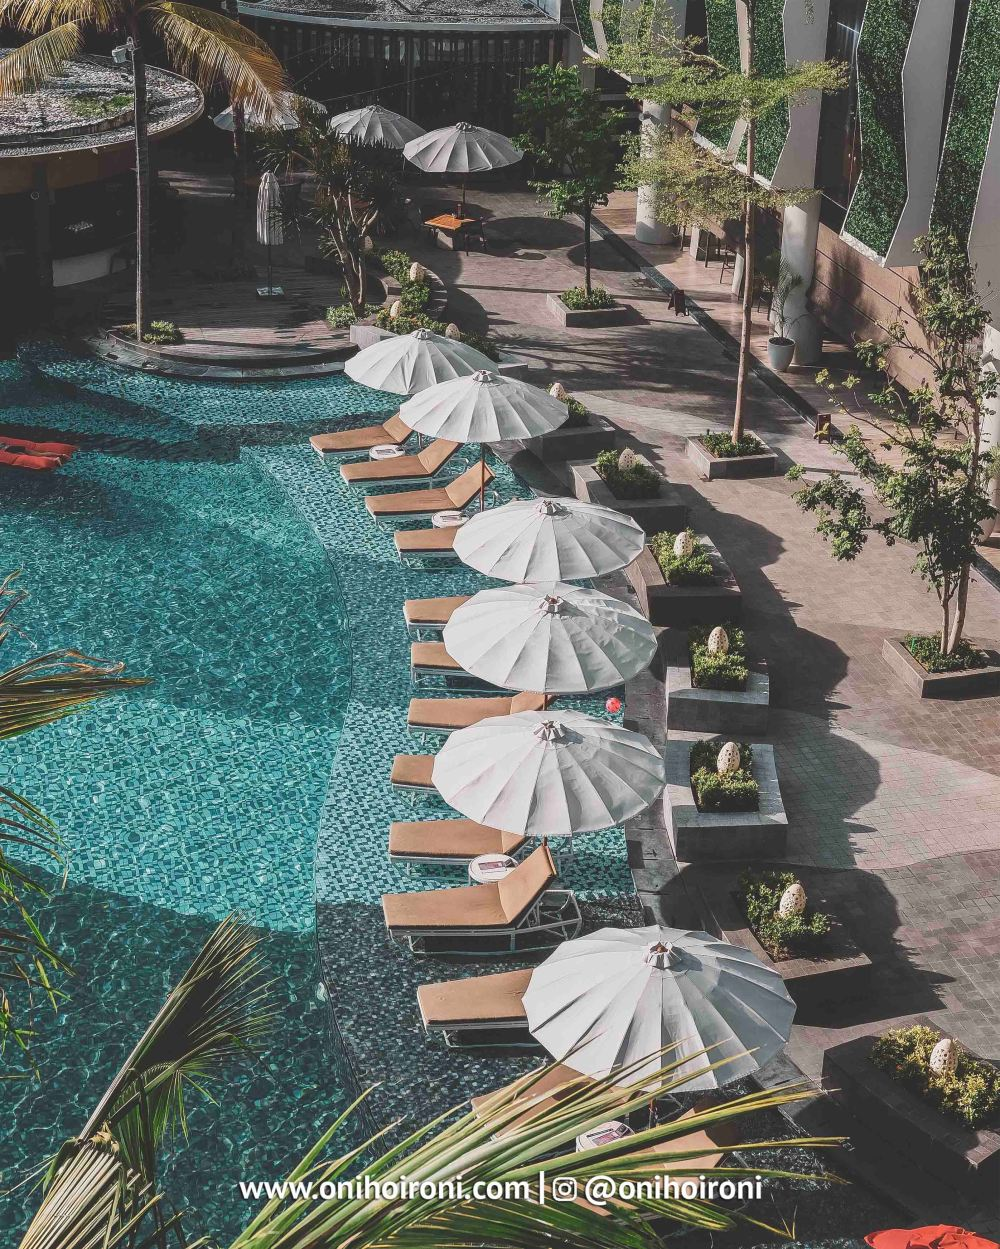 10 SWIMMING POOL The Stones Hotel Bali Legian oni hoironi